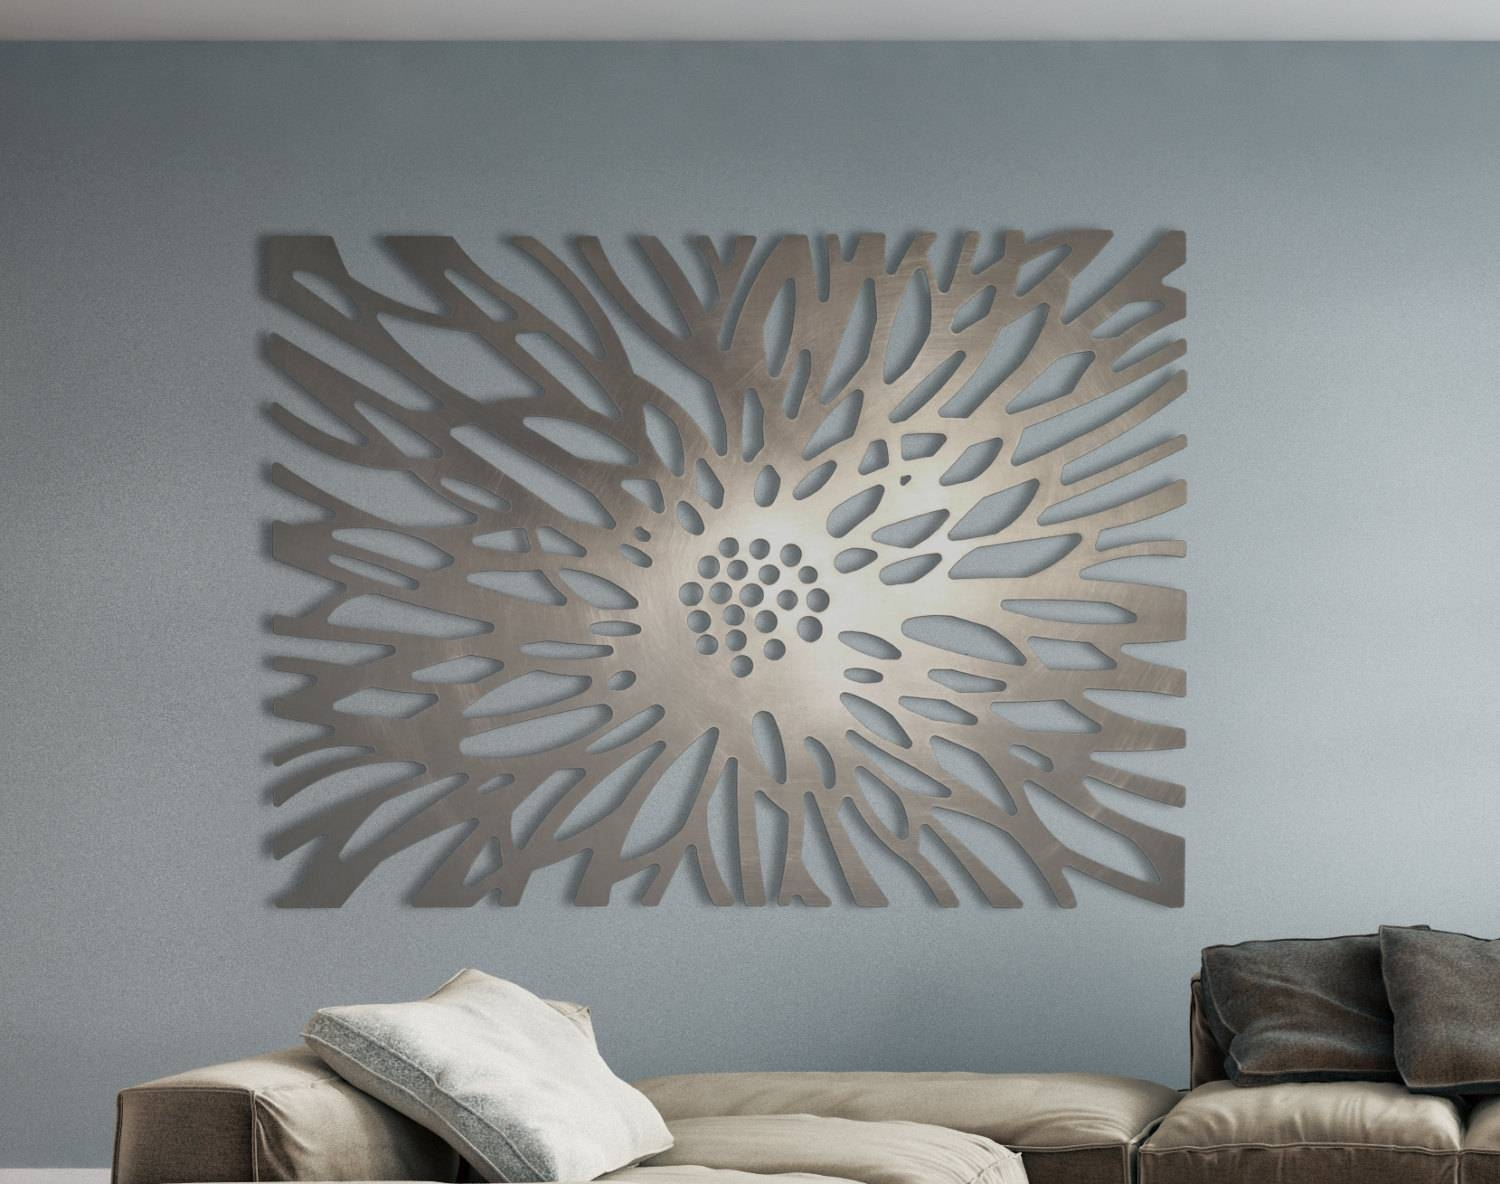 Laser Cut Metal Decorative Wall Art Panel Sculpture For Home With Recent Outdoor Metal Wall Art Panels (View 12 of 20)